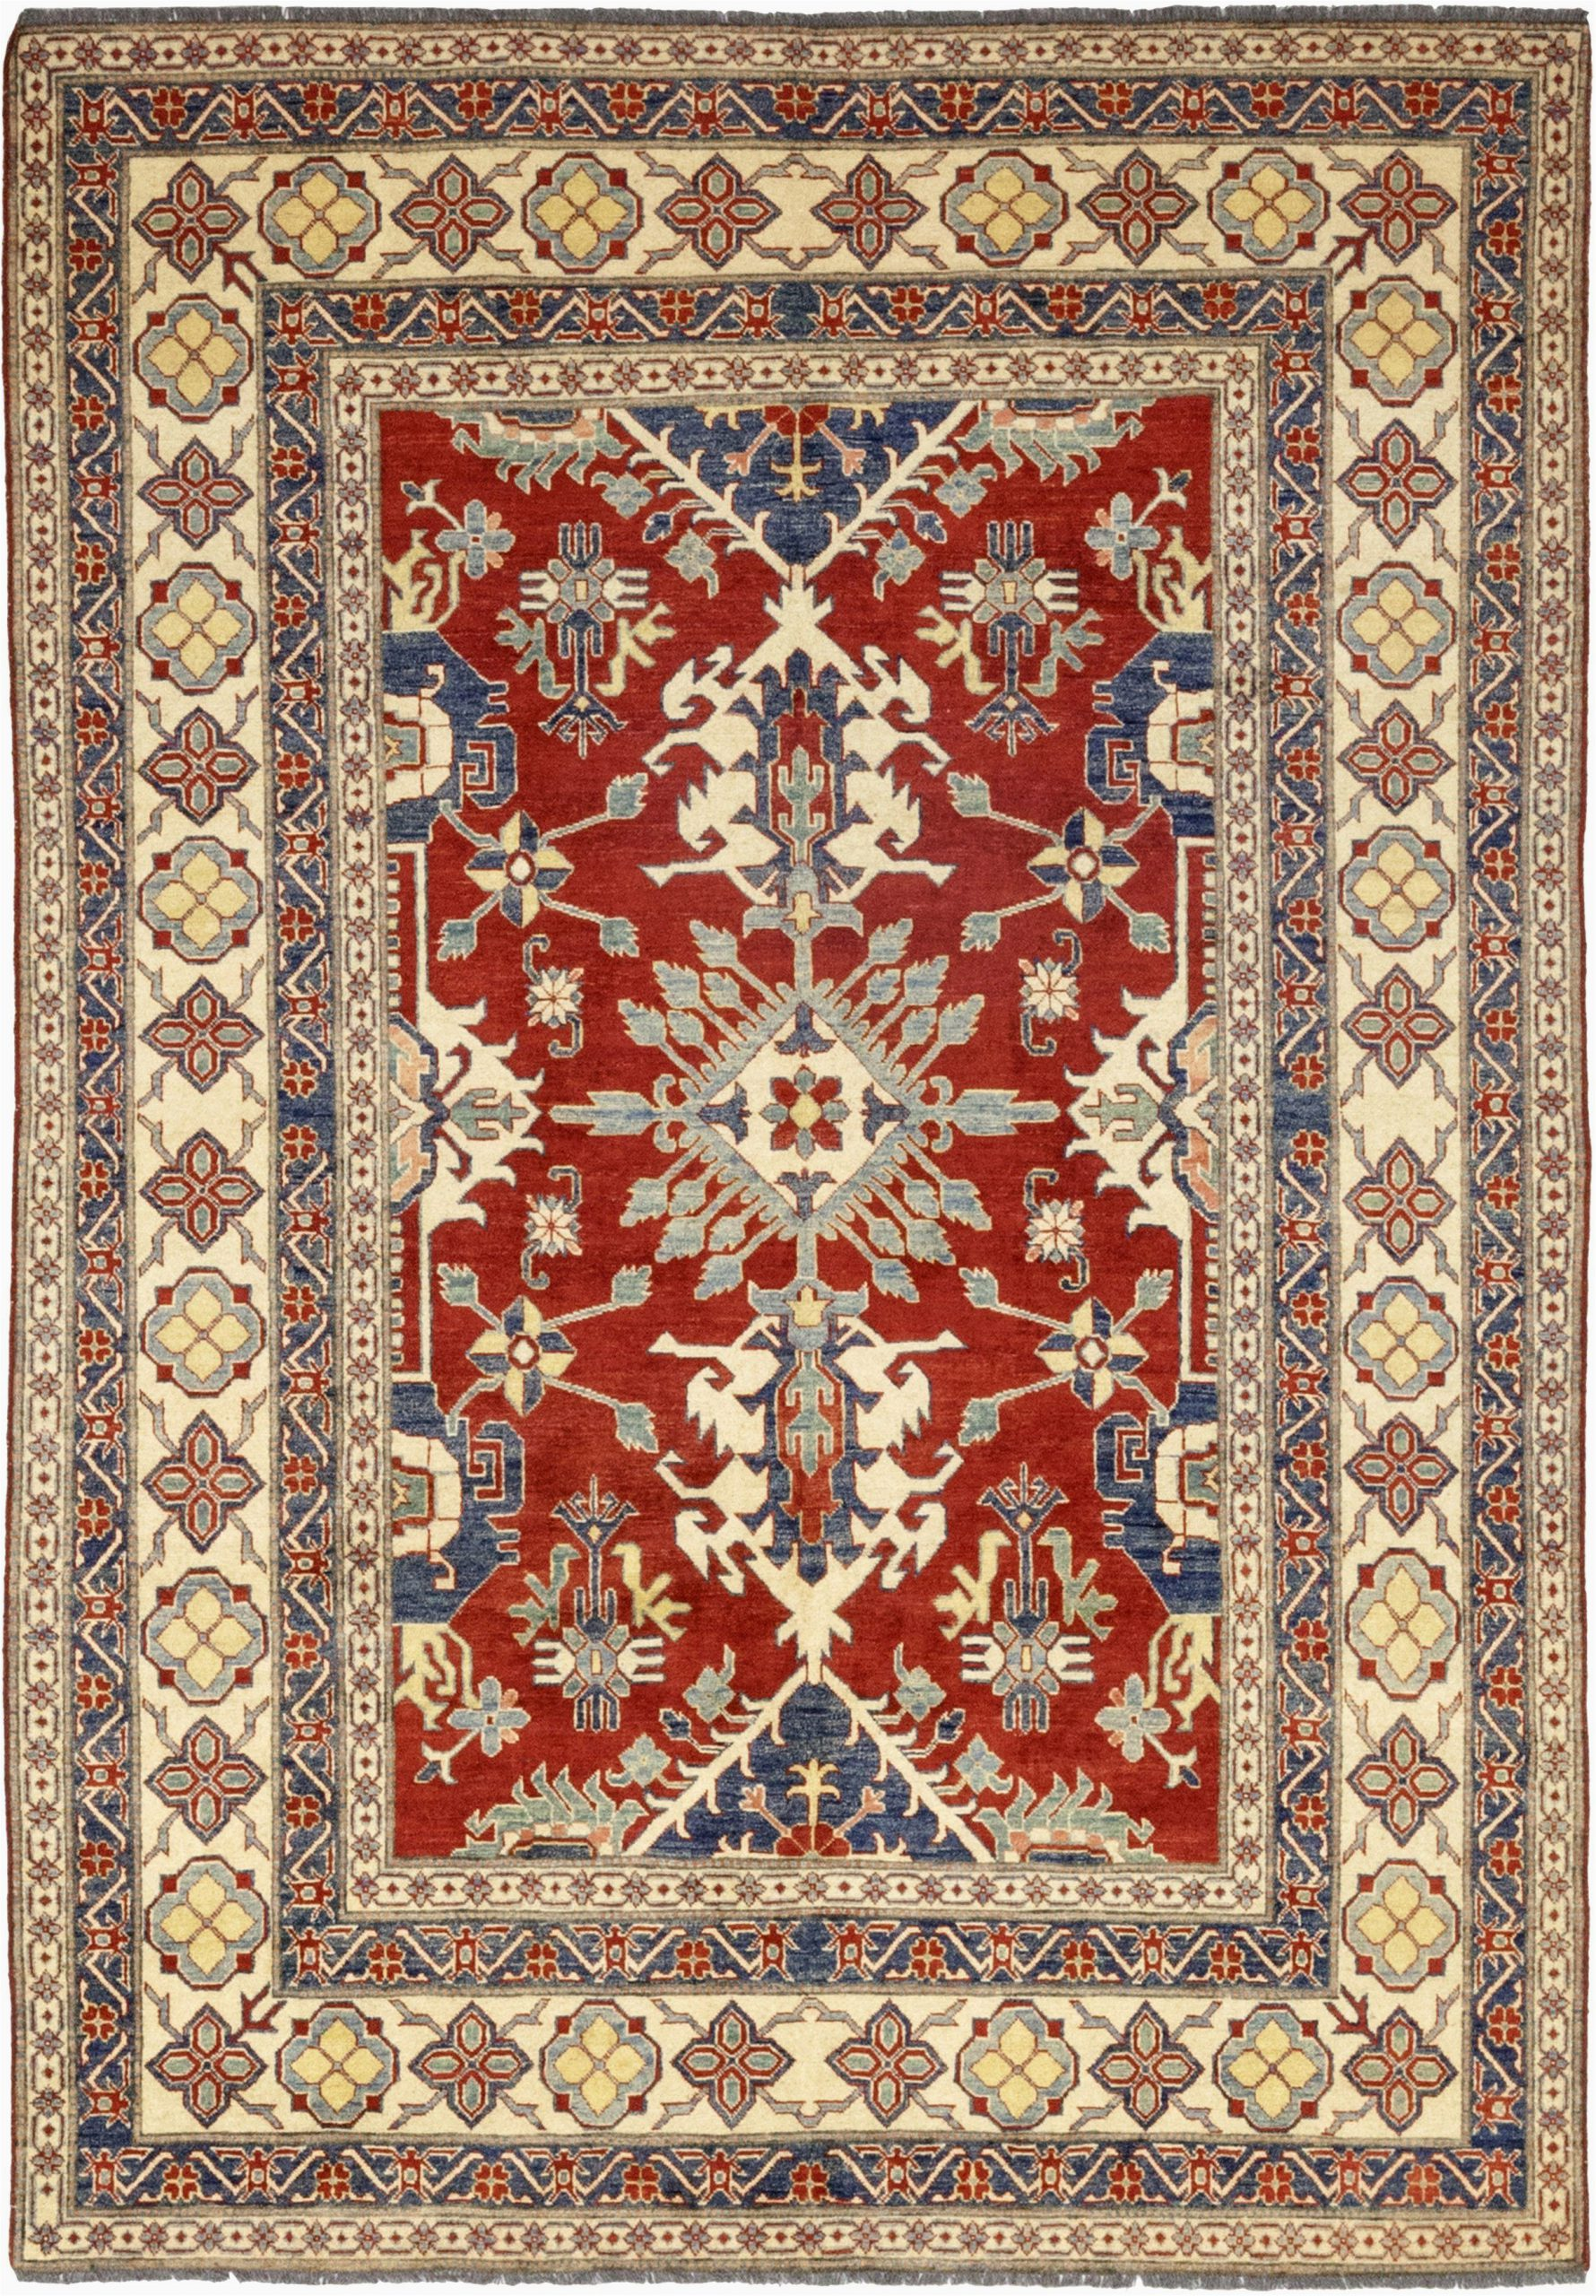 lowes area rugs clearance hand knotted kazak rectangle area rug design m1525 656 from lowes area rugs clearance